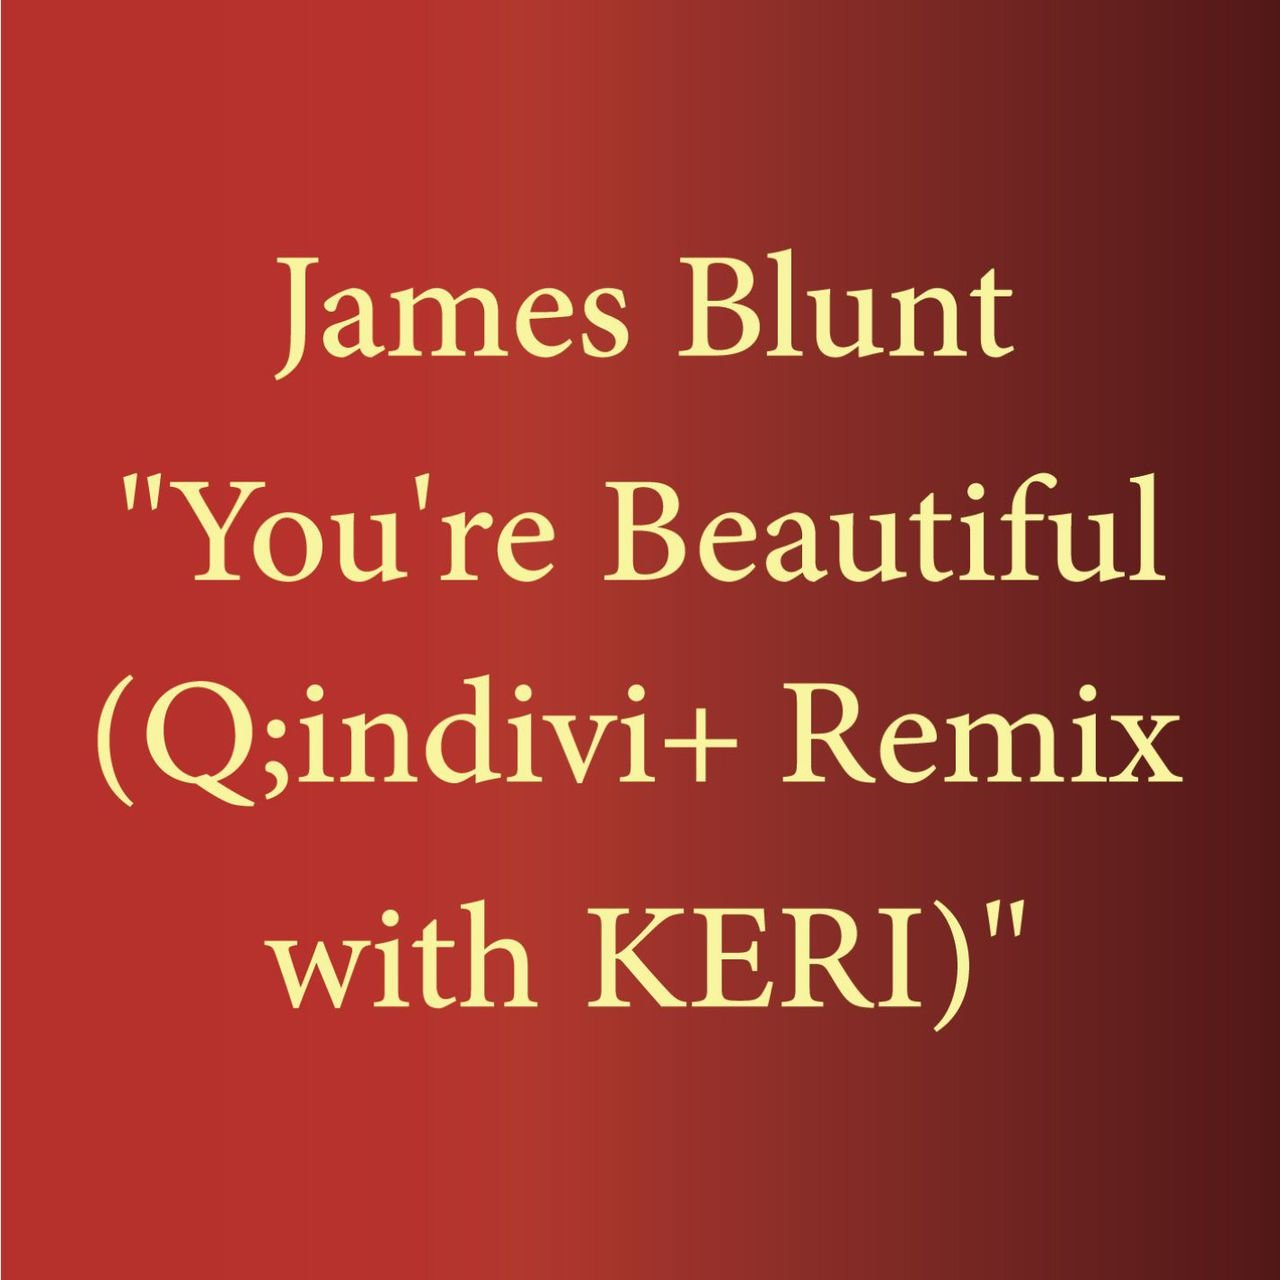 You're Beautiful (Q;indivi+ Remix with KERI)